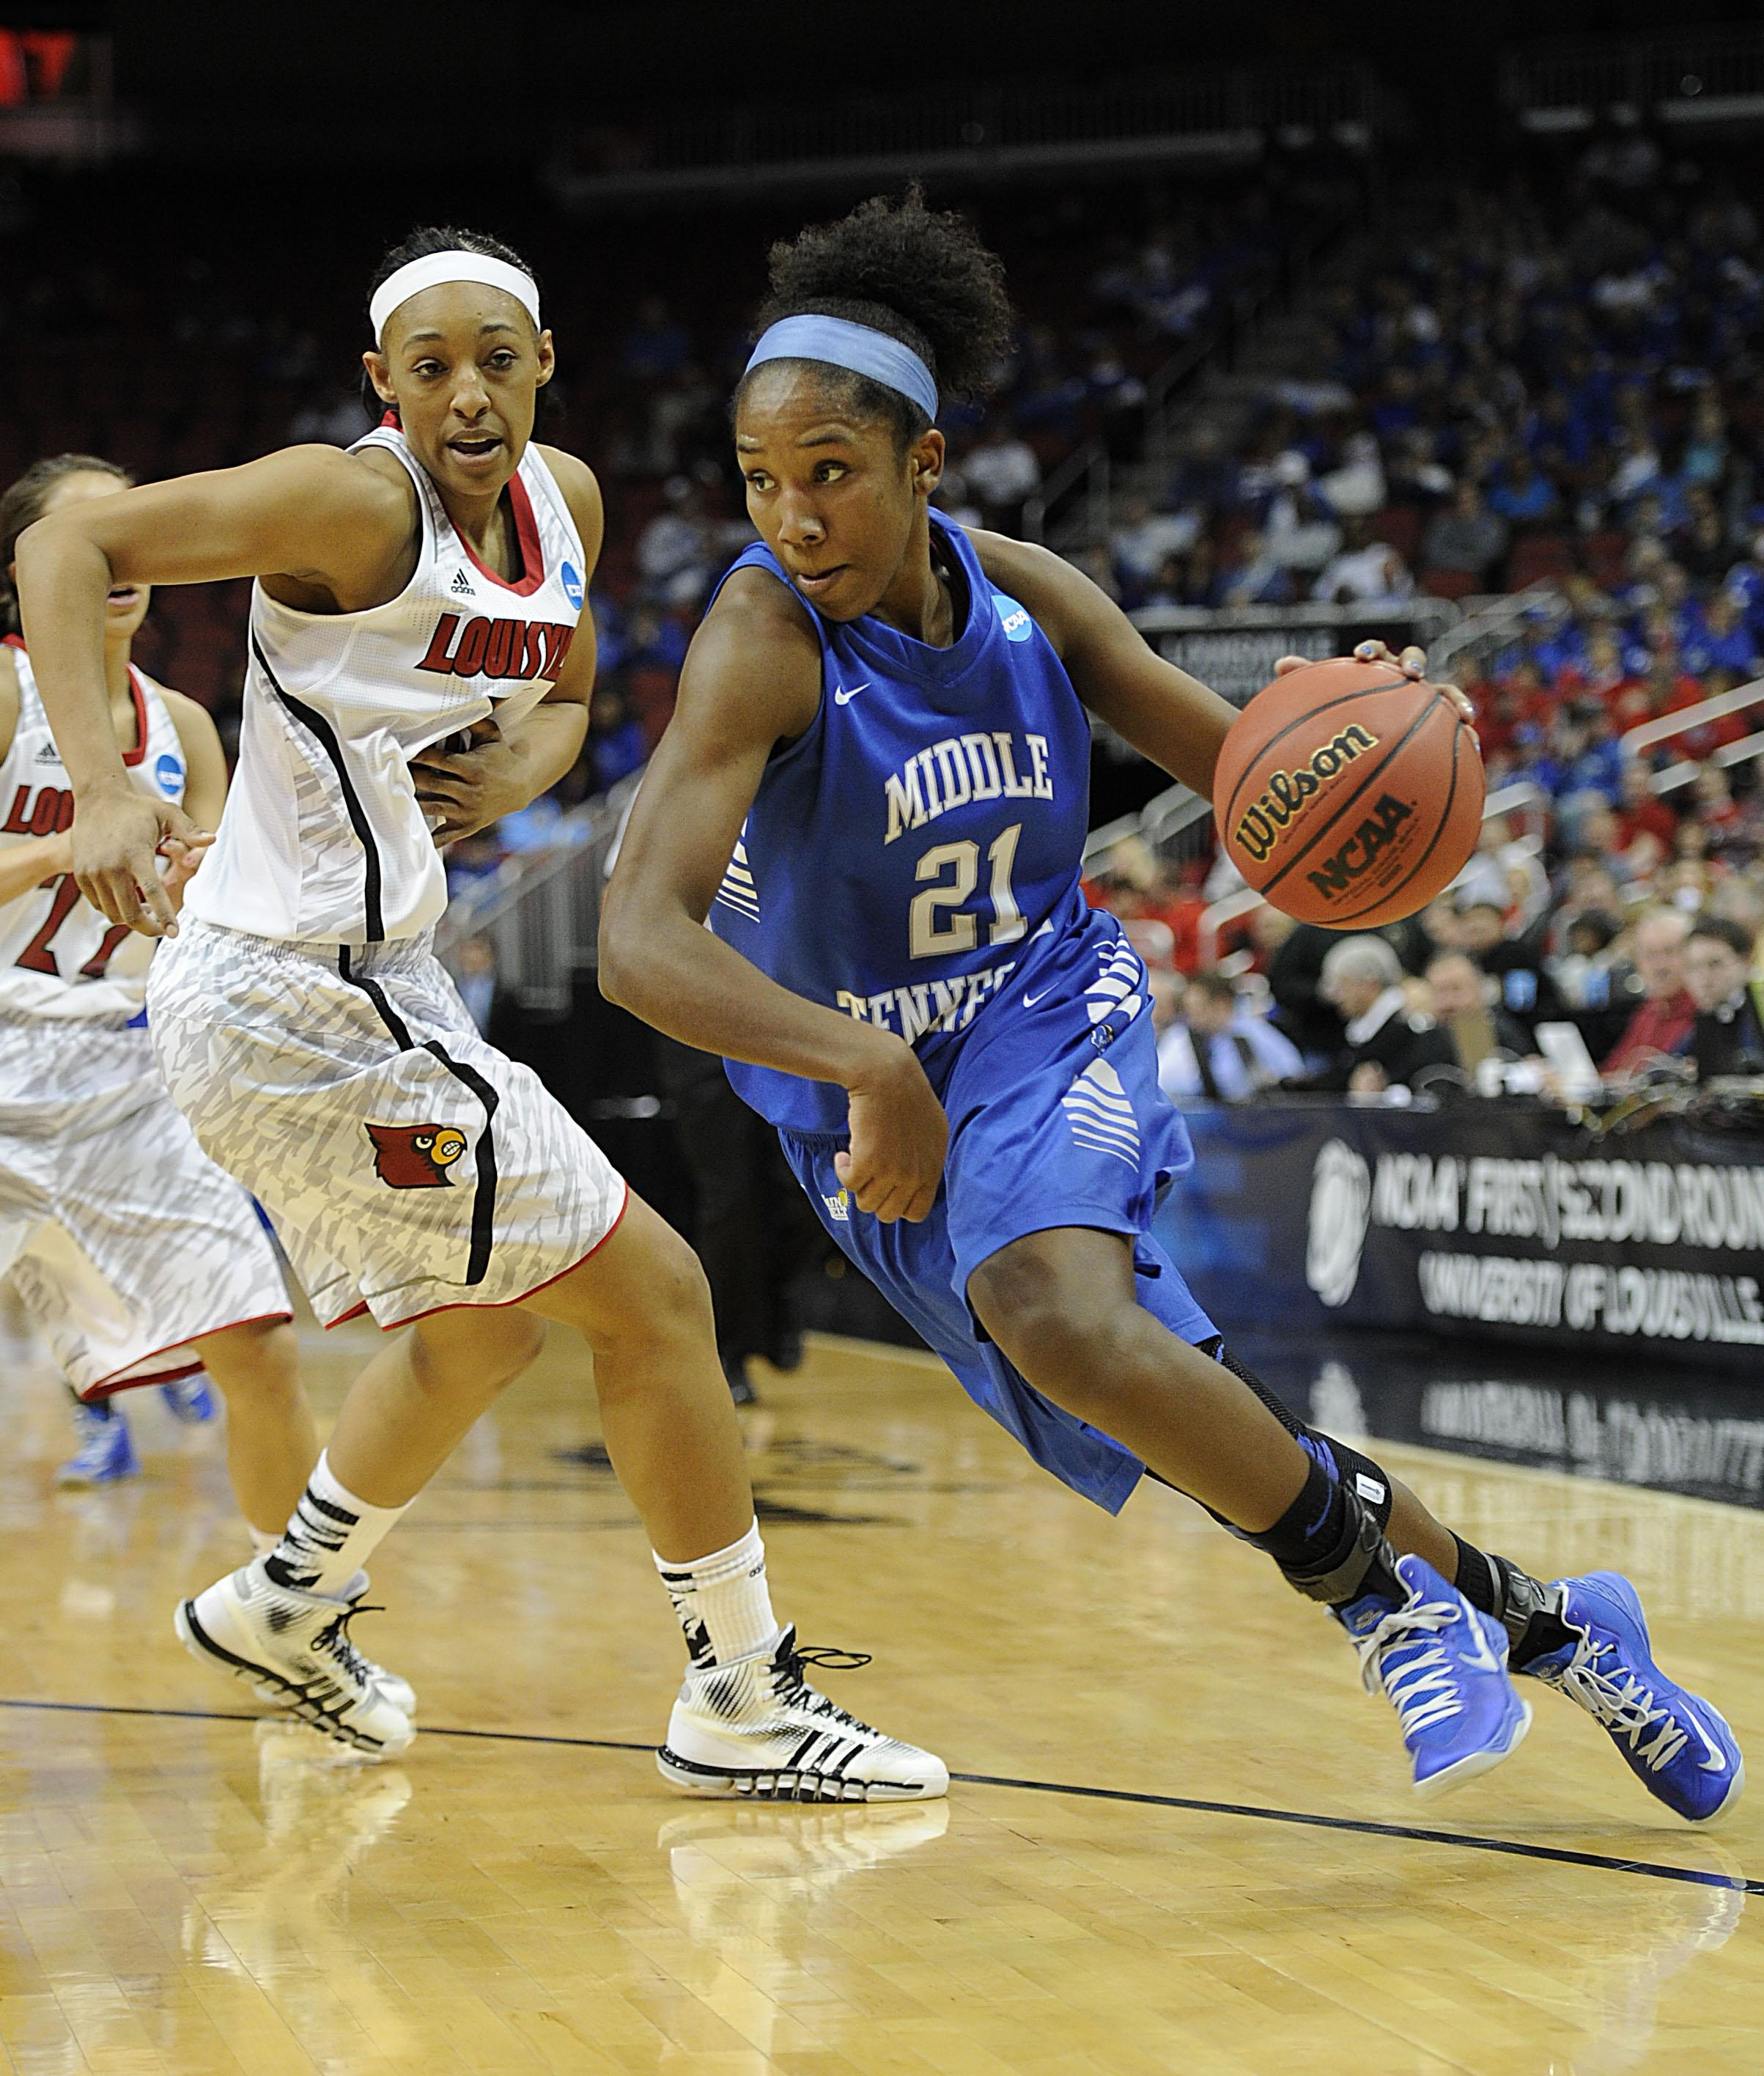 Middle Tennessee Basketball